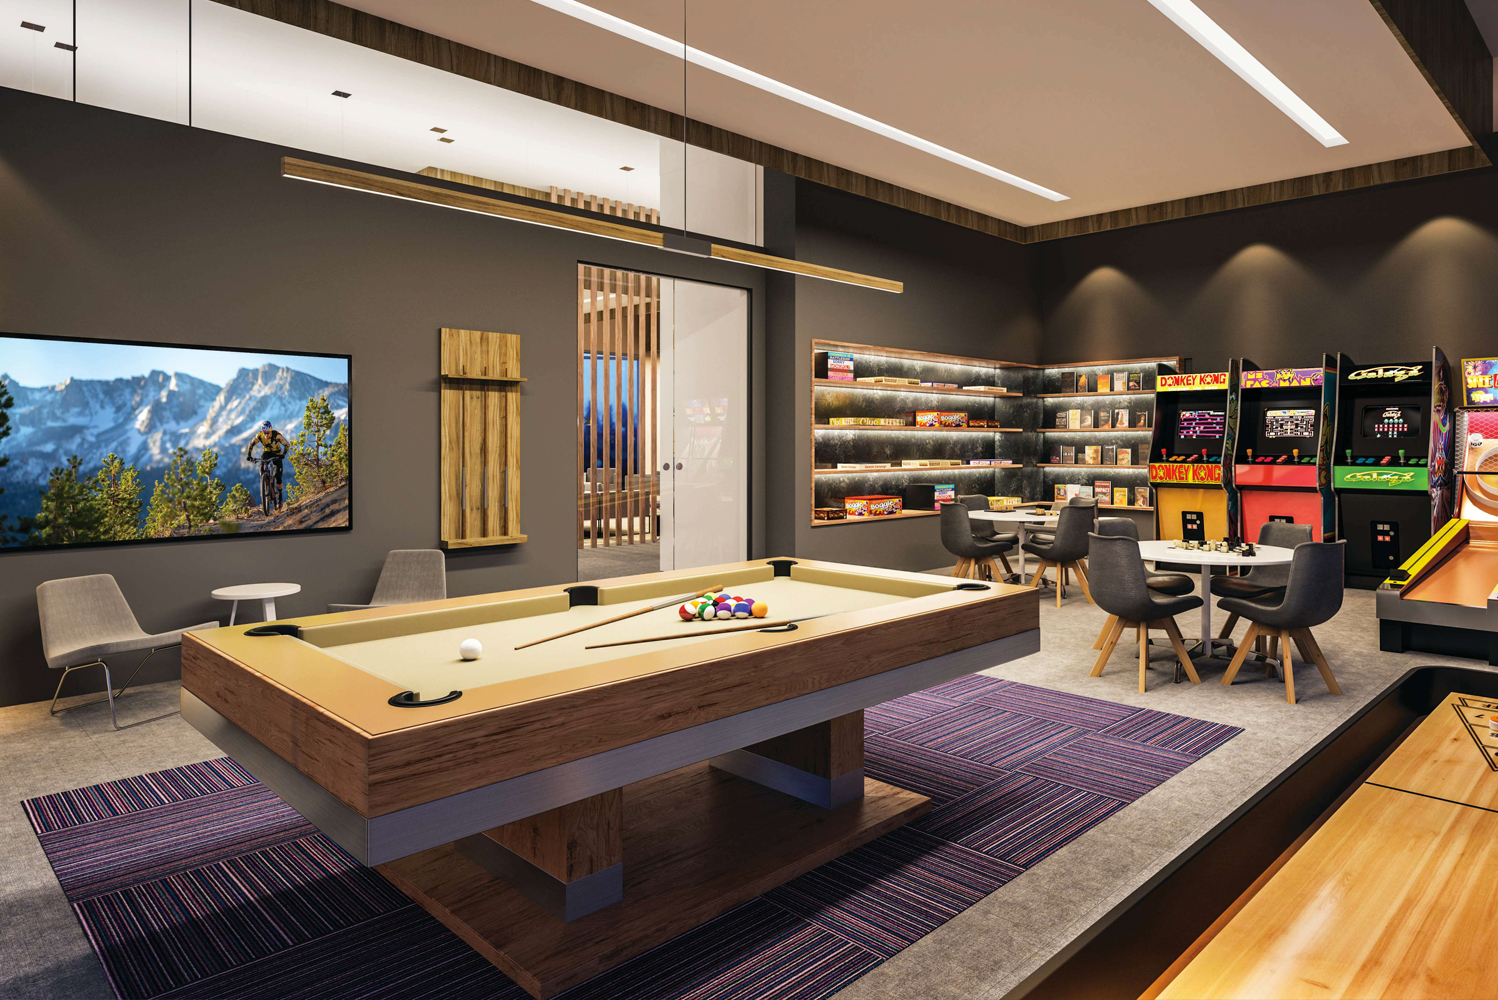 Yotel worked with Method Studios in the design of 177-unit YotelPad Mammoth.